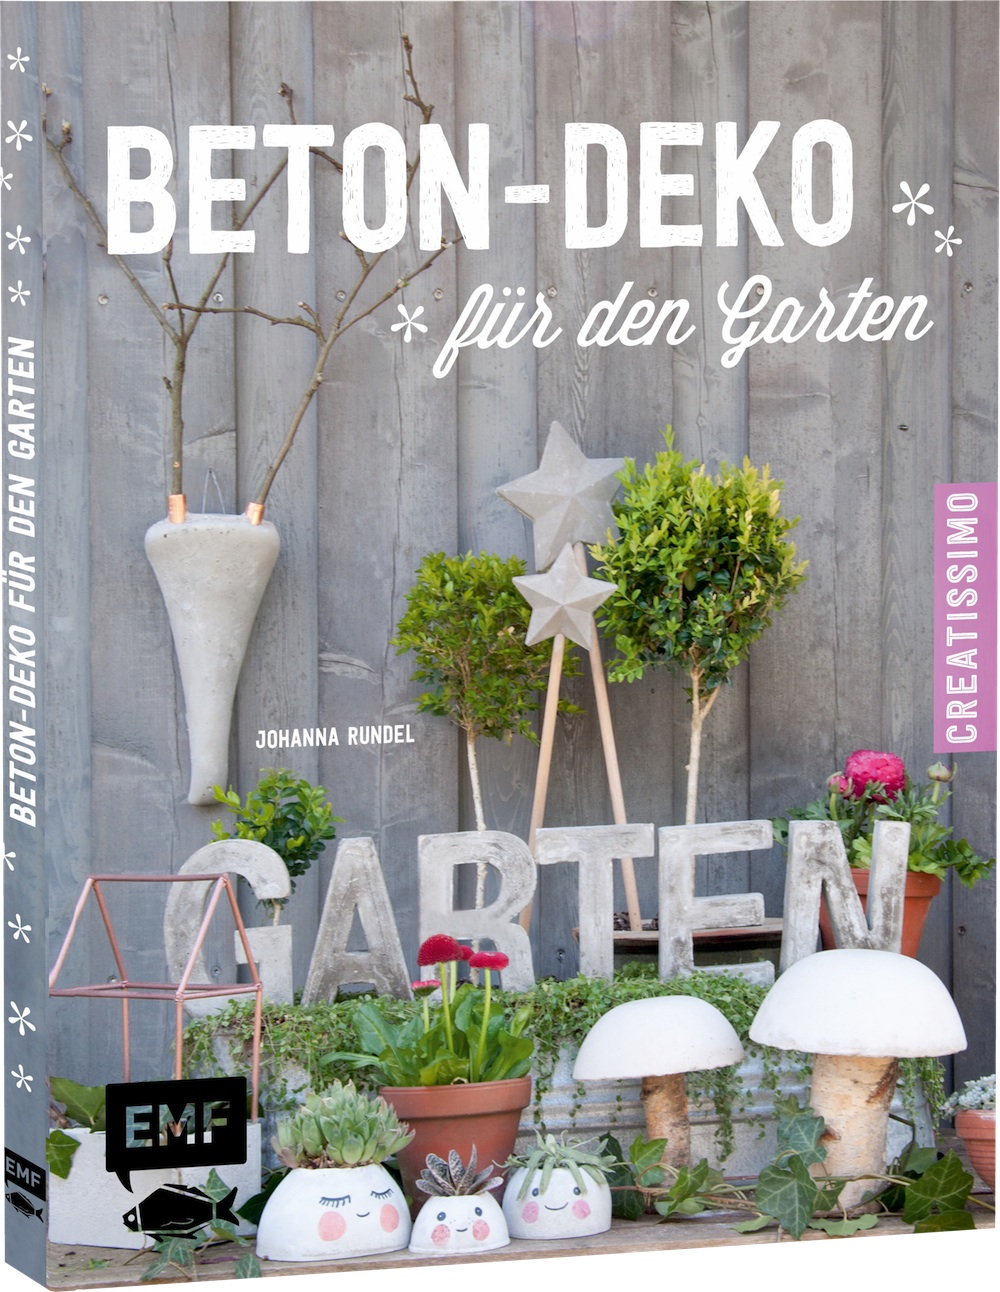 garten deko aus beton trendblog. Black Bedroom Furniture Sets. Home Design Ideas